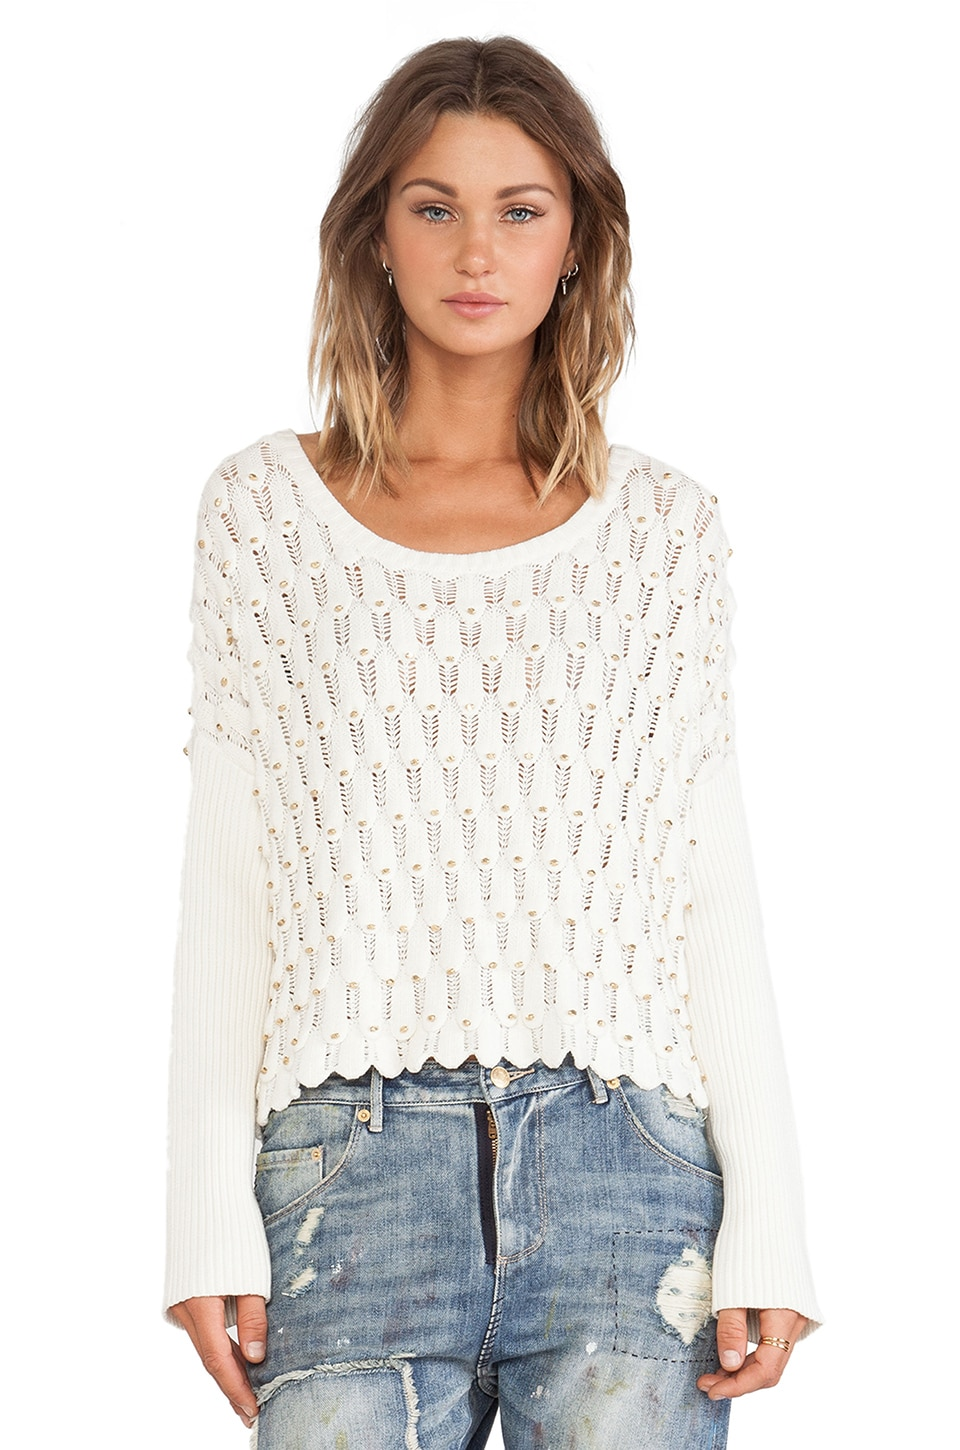 Sass & Bide The Cover-Up Sweater in Ivory